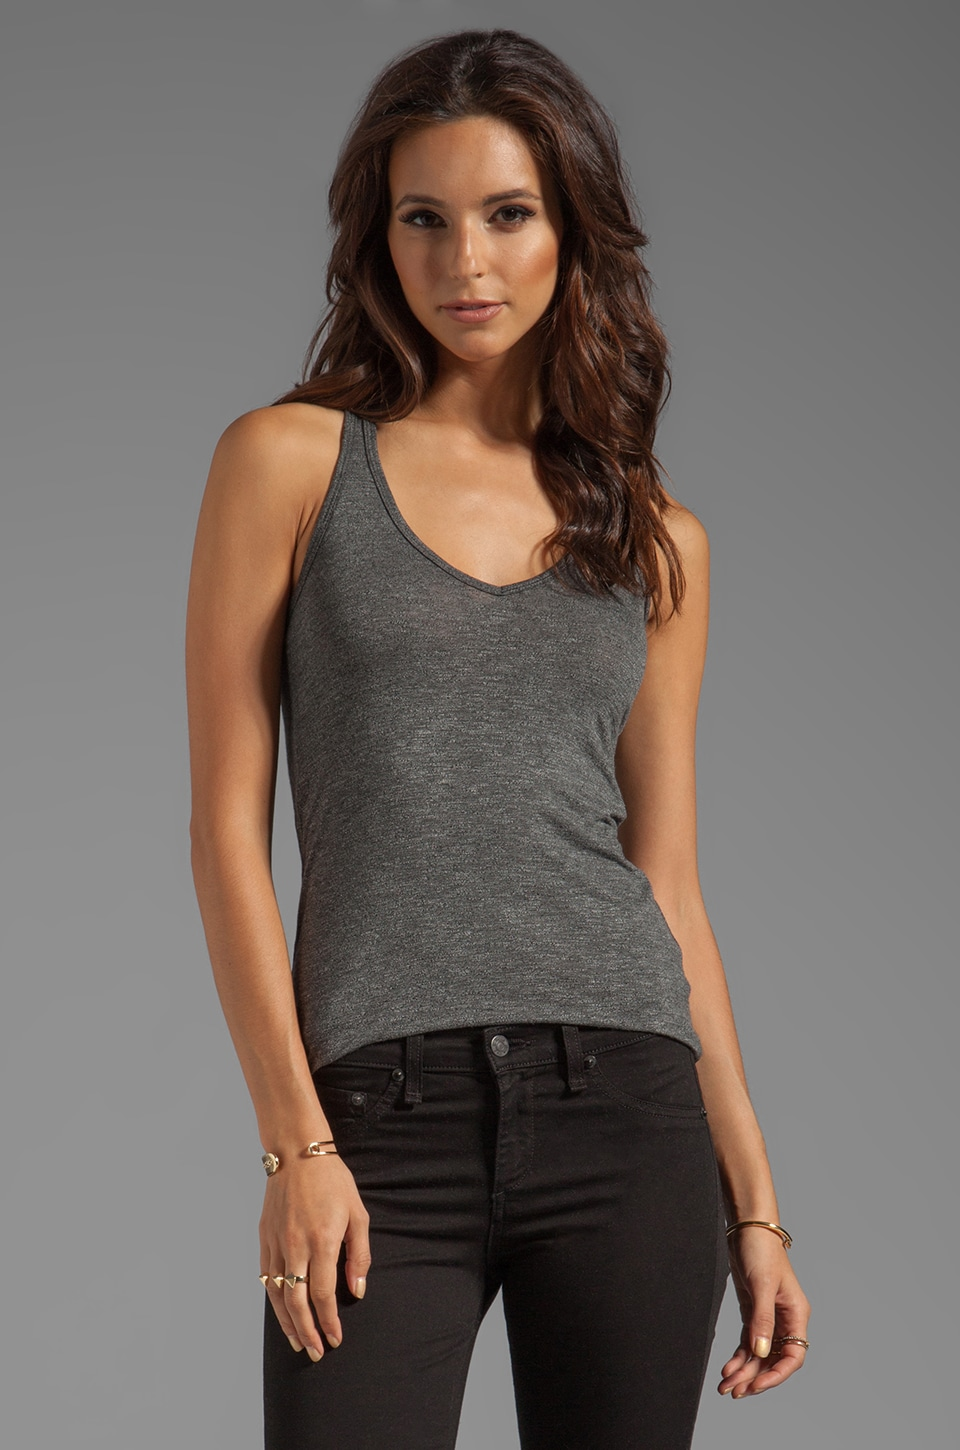 Feel the Piece Terrific Racer V-Neck Tank in Dark Platinum